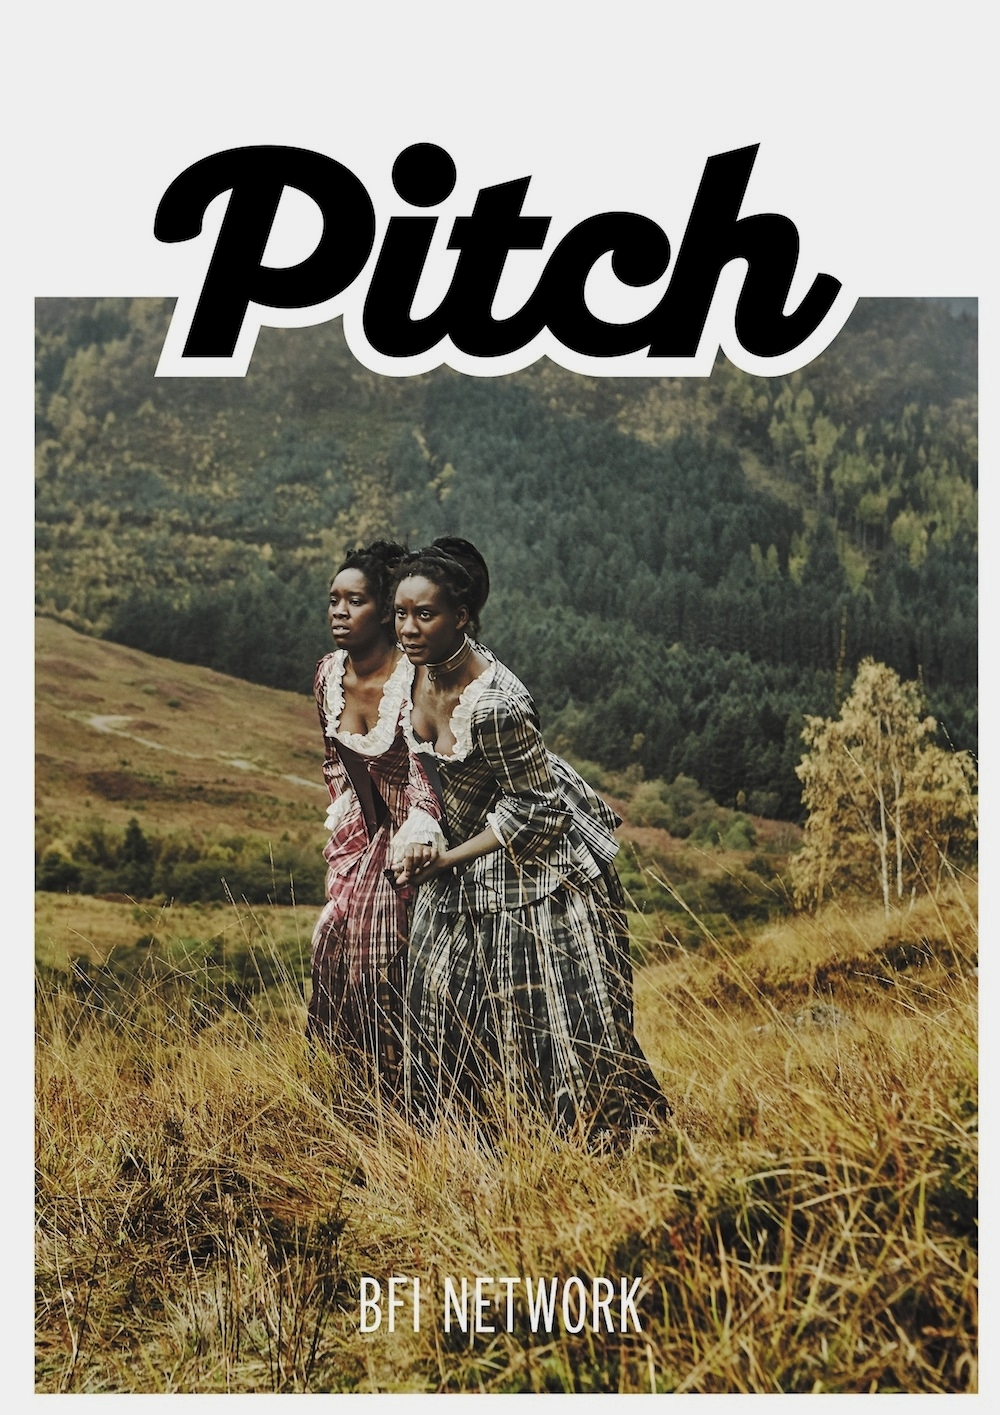 pitch-009-bfi-network-cover-compressed.jpg